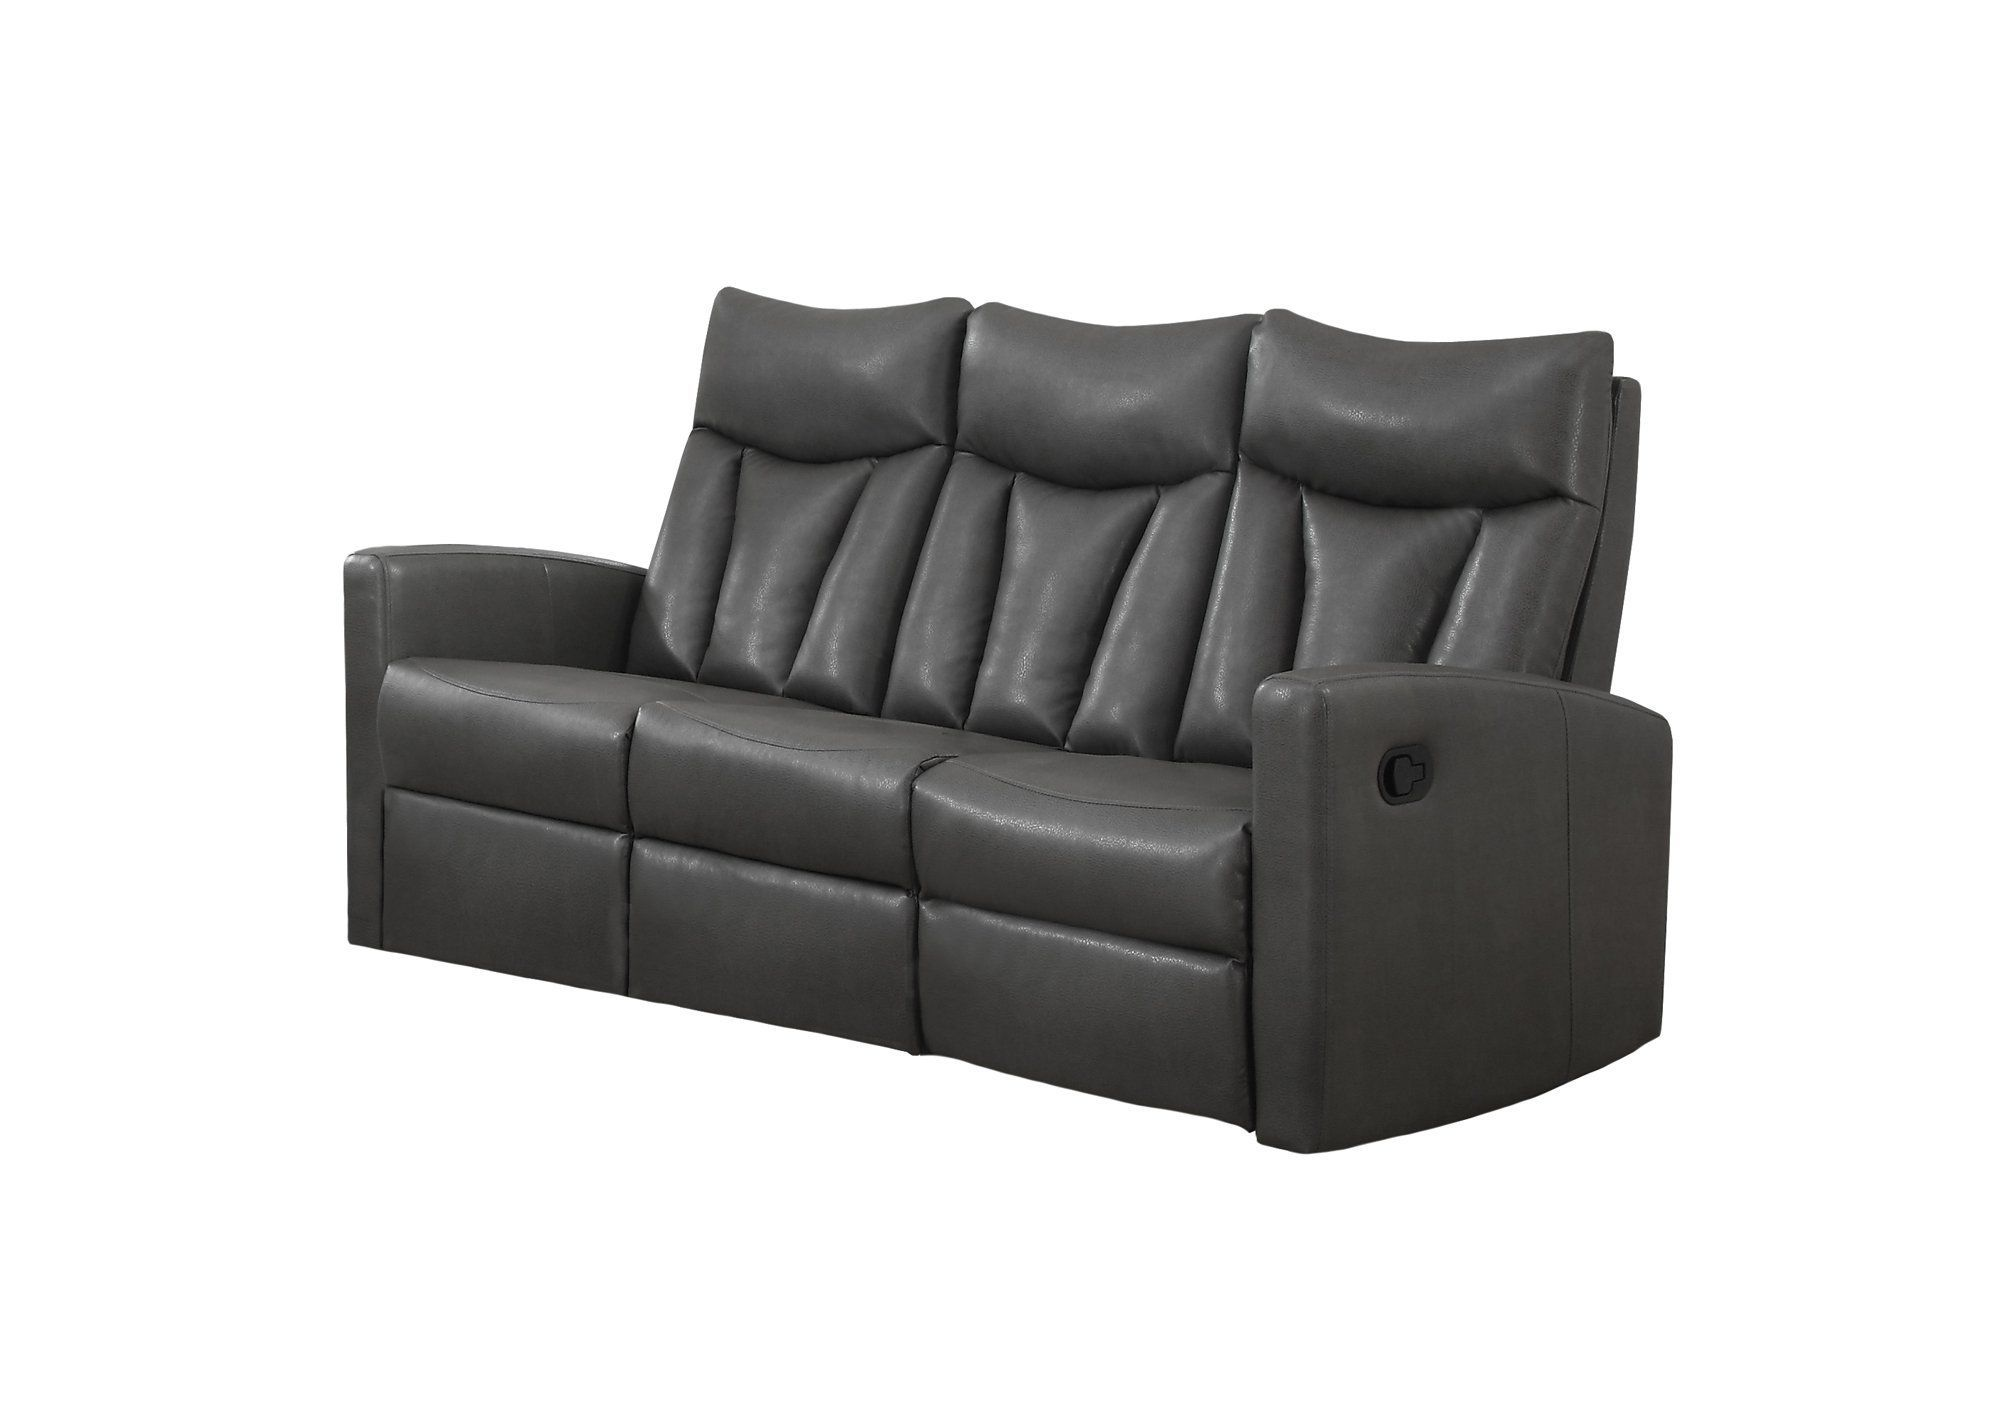 Astonishing Reclining Sofa Charcoal Grey Bonded Leather Products Andrewgaddart Wooden Chair Designs For Living Room Andrewgaddartcom